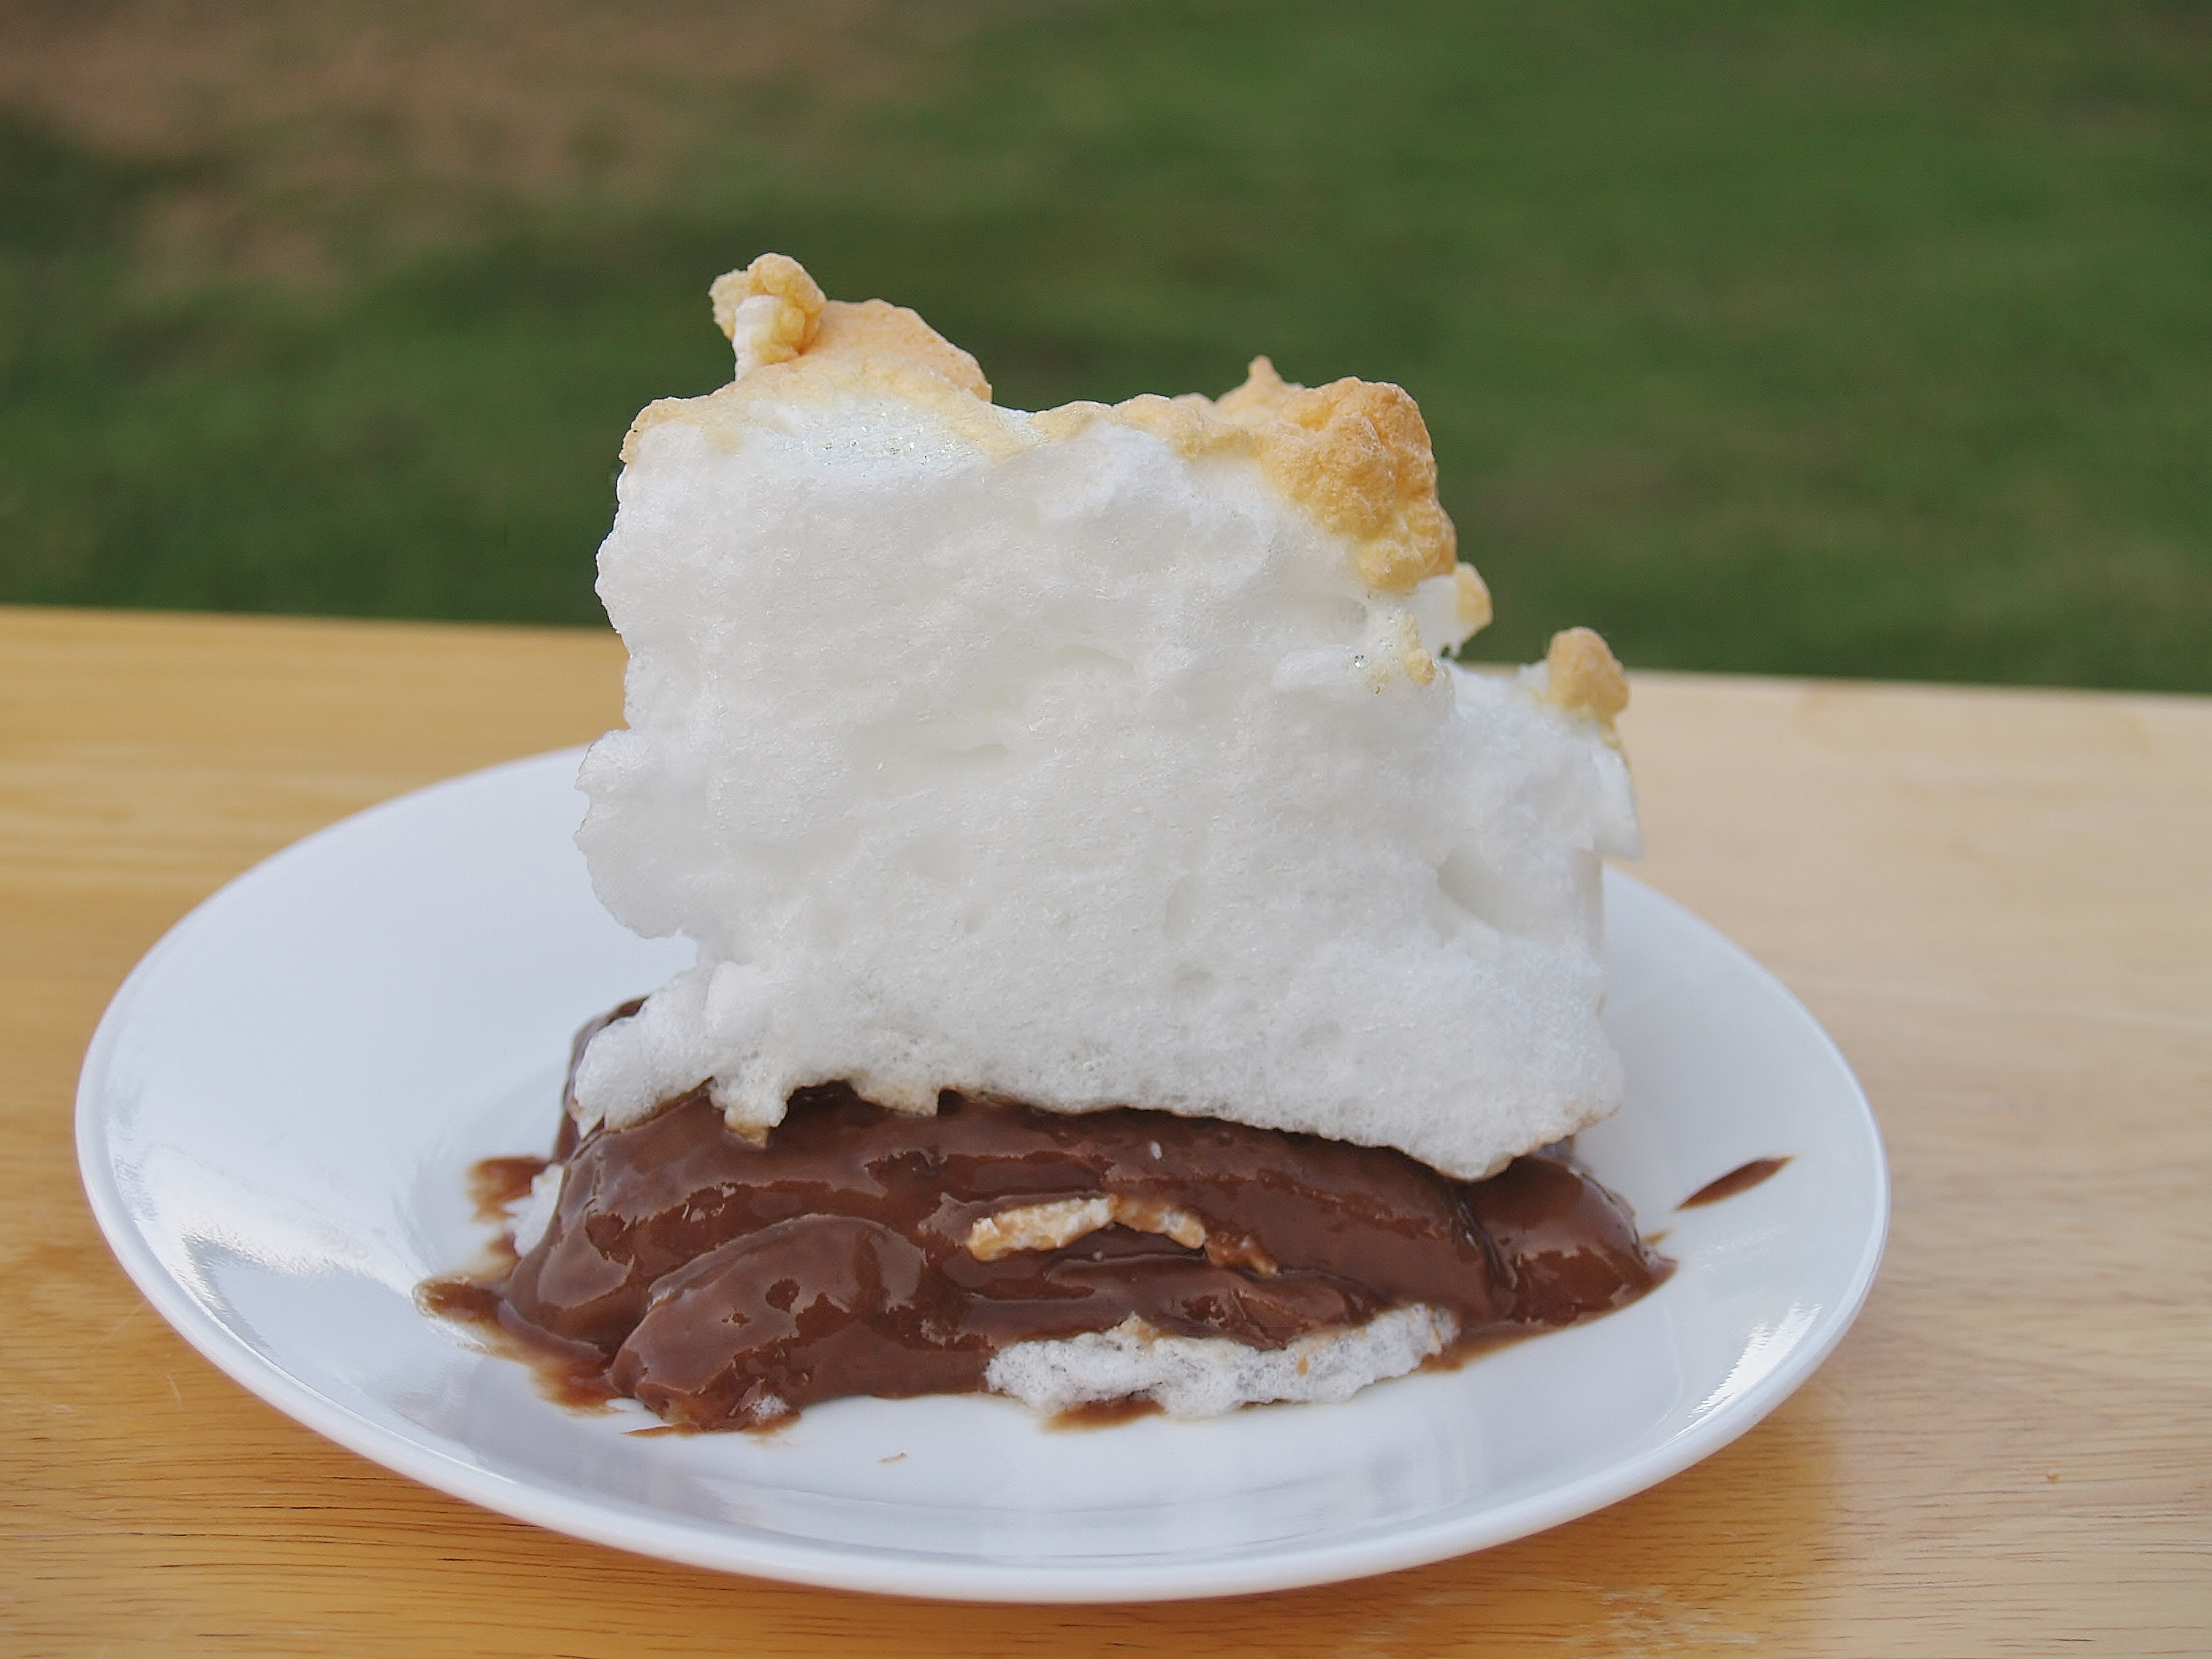 Chocolate Pie with Meringue/Kelli's Retro Kitchen Arts